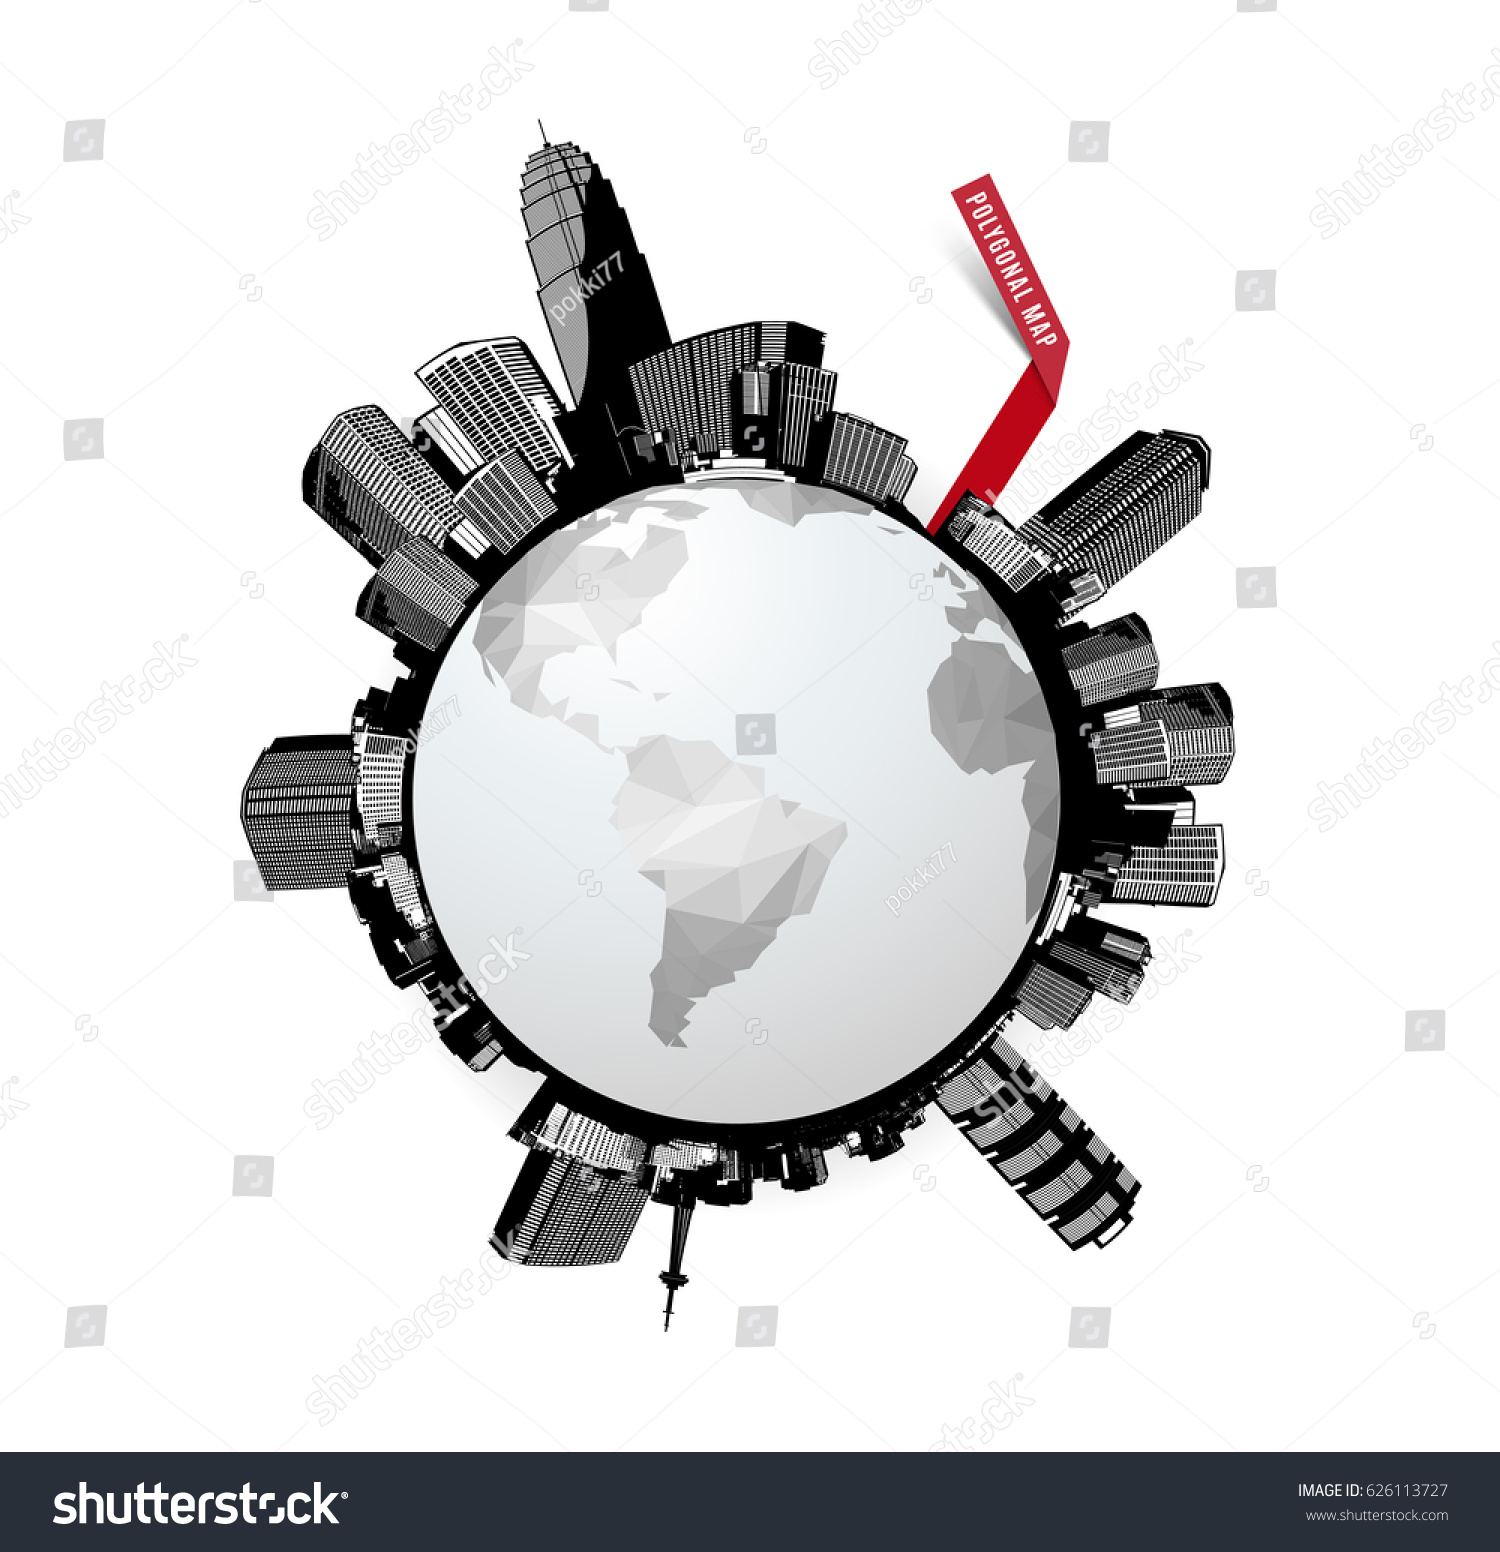 Black white circle cityscape skyscrapers world vectores en stock black and white circle cityscape with skyscrapers and world polygonal map gumiabroncs Gallery